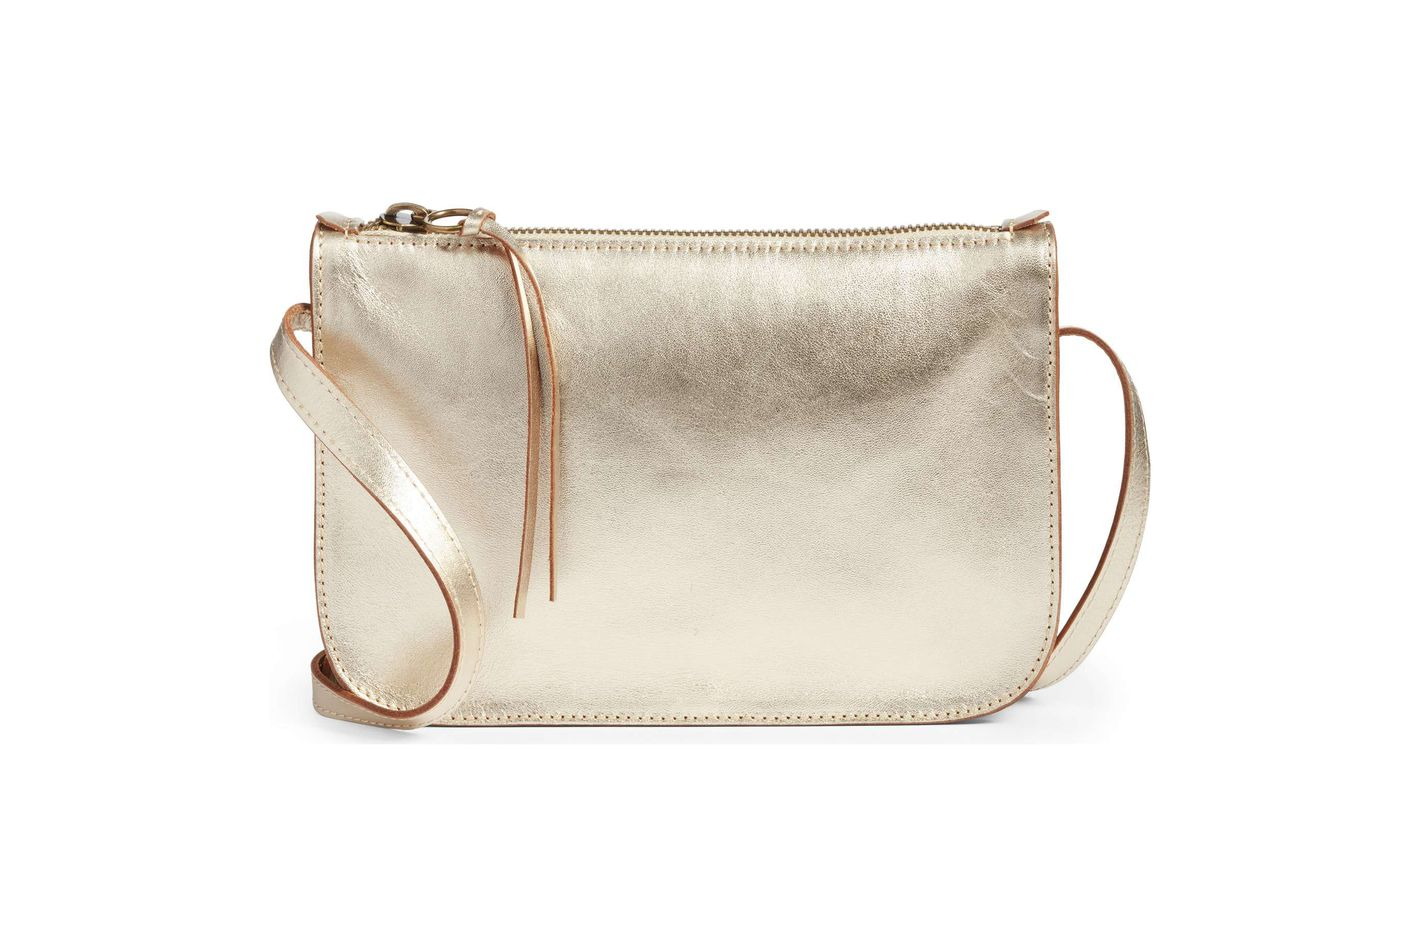 Madewell The Simple Crossbody Bag in Metallic